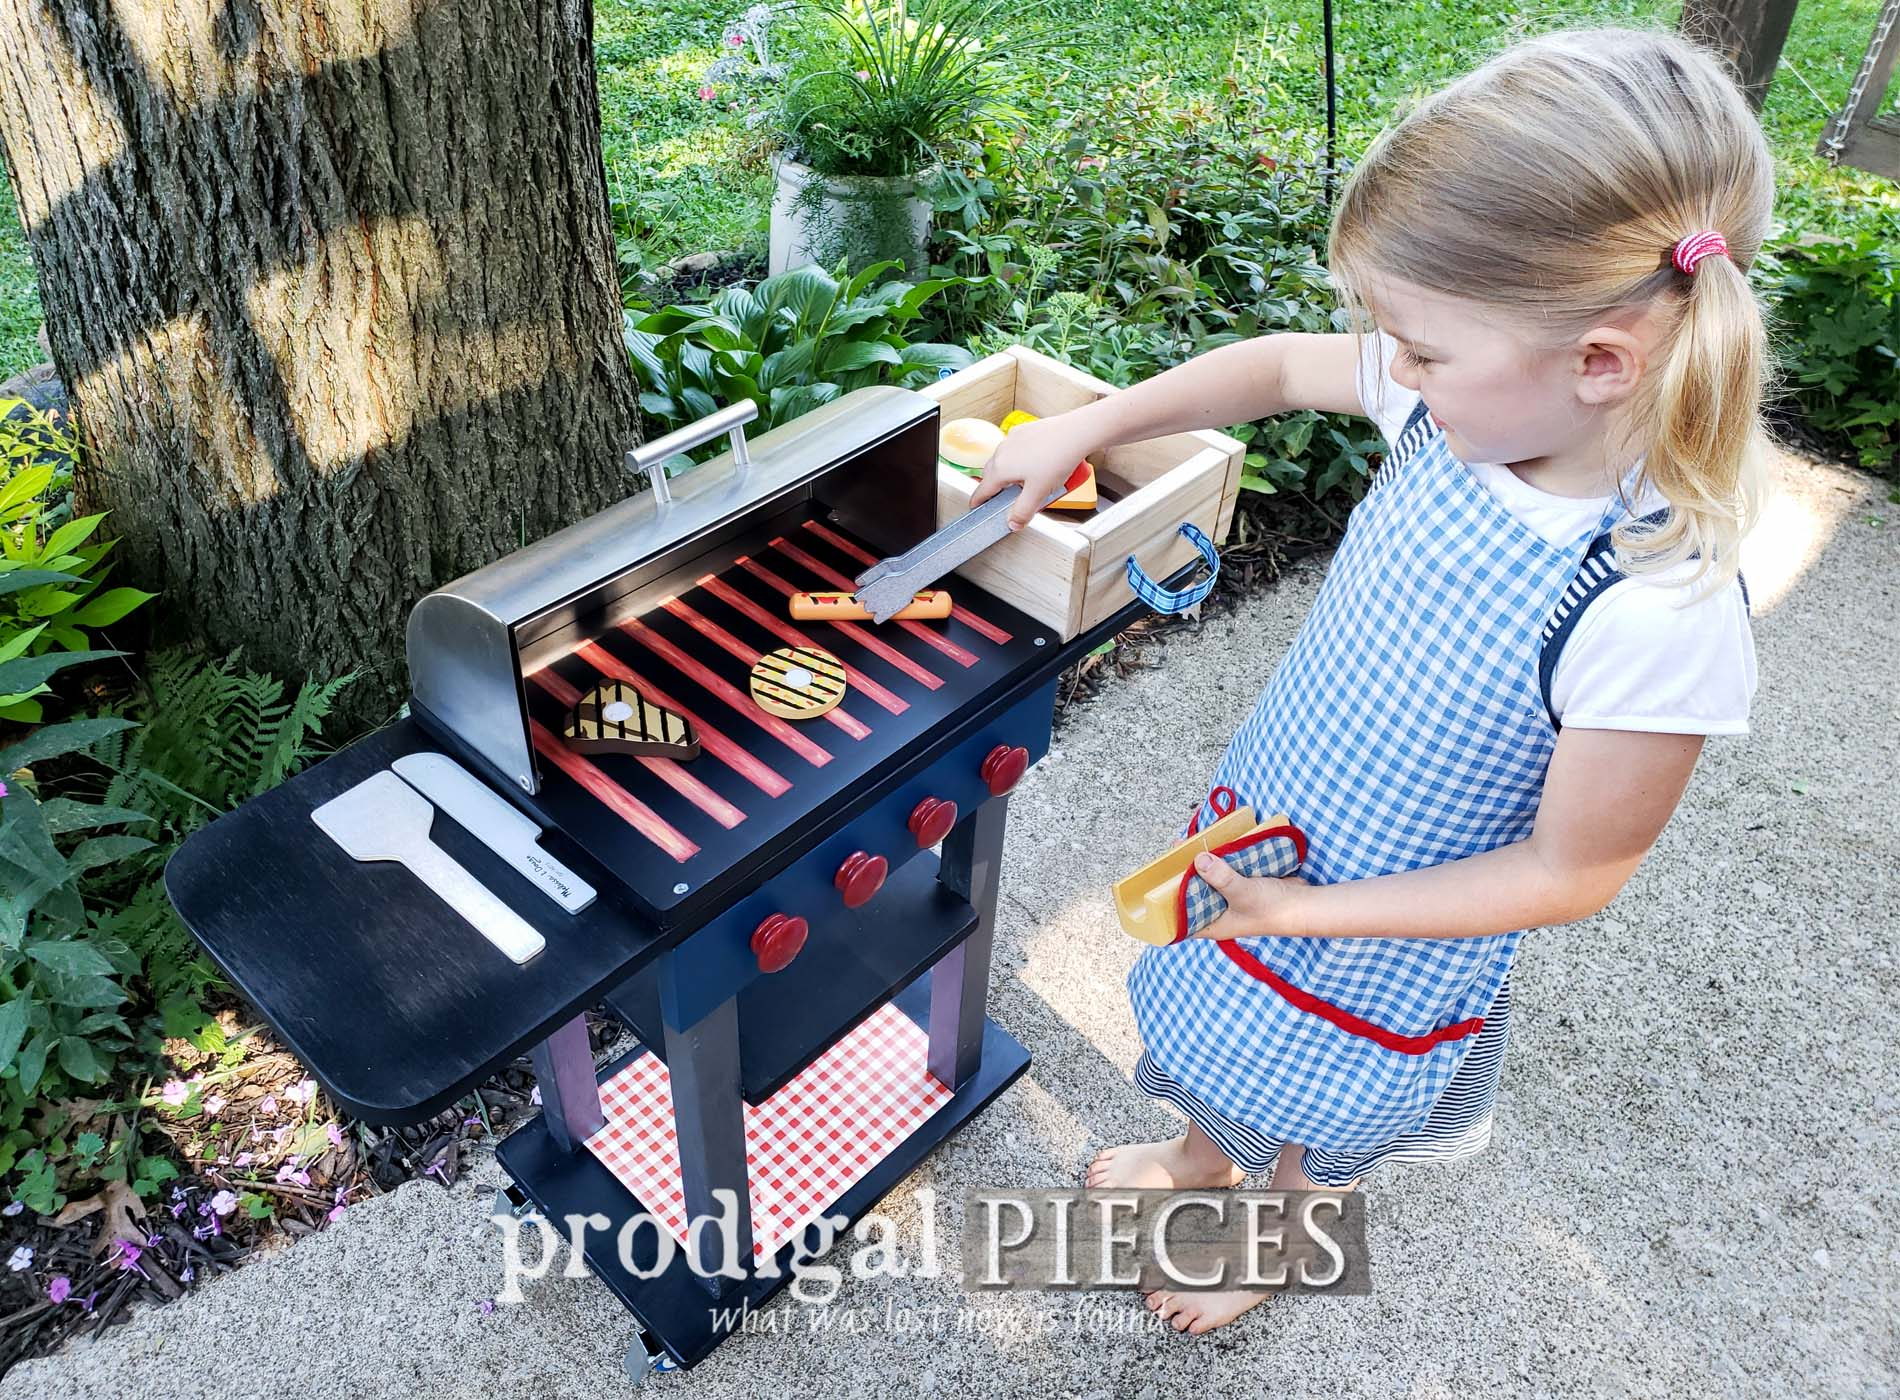 Featured Pretend Play Grill Set made from Upcycled Bread Box by Larissa of Prodigal Pieces | prodigalpieces.com #prodigalpieces #diy #kids #toys #pretendplay #home #homedecor #fun